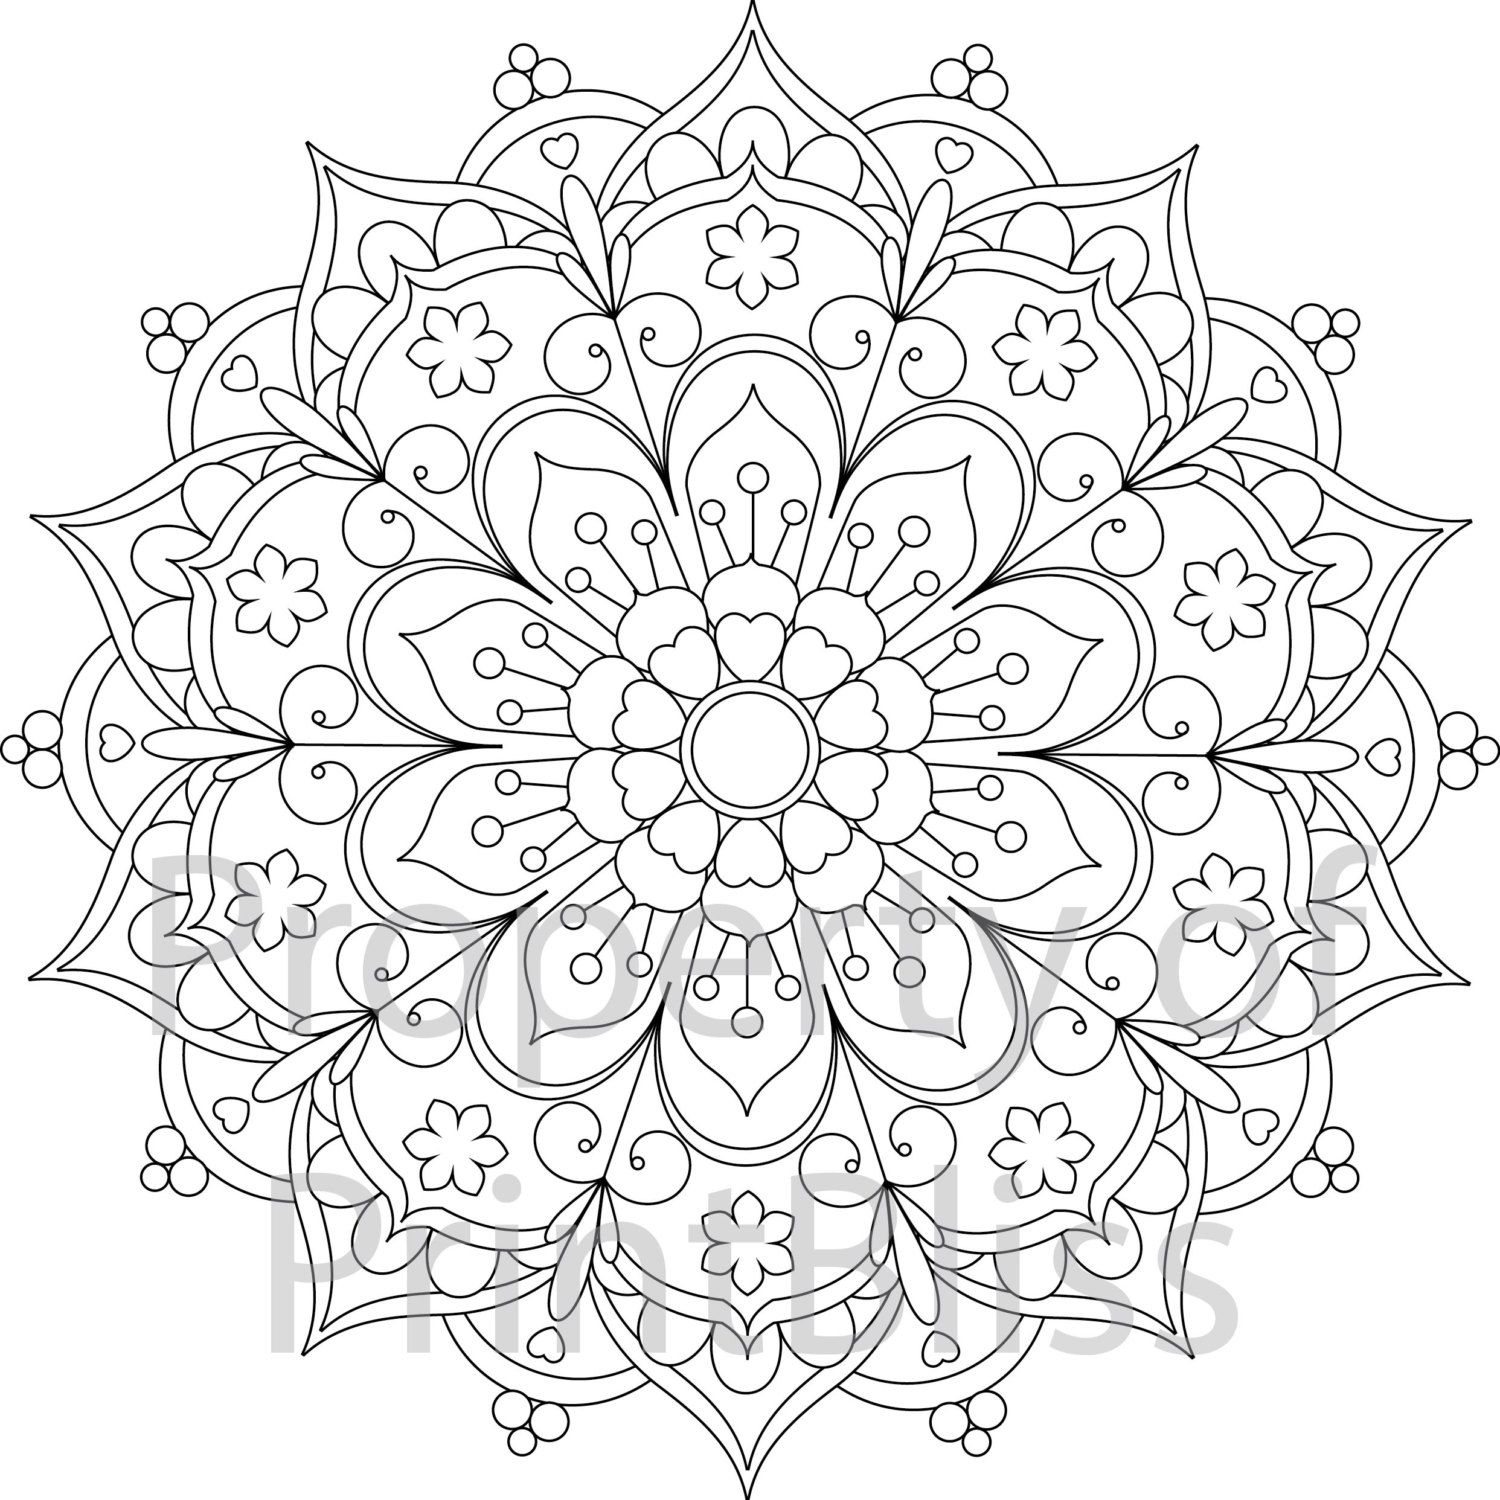 25 flower mandala printable coloring page by printbliss on etsy art my work mandala. Black Bedroom Furniture Sets. Home Design Ideas